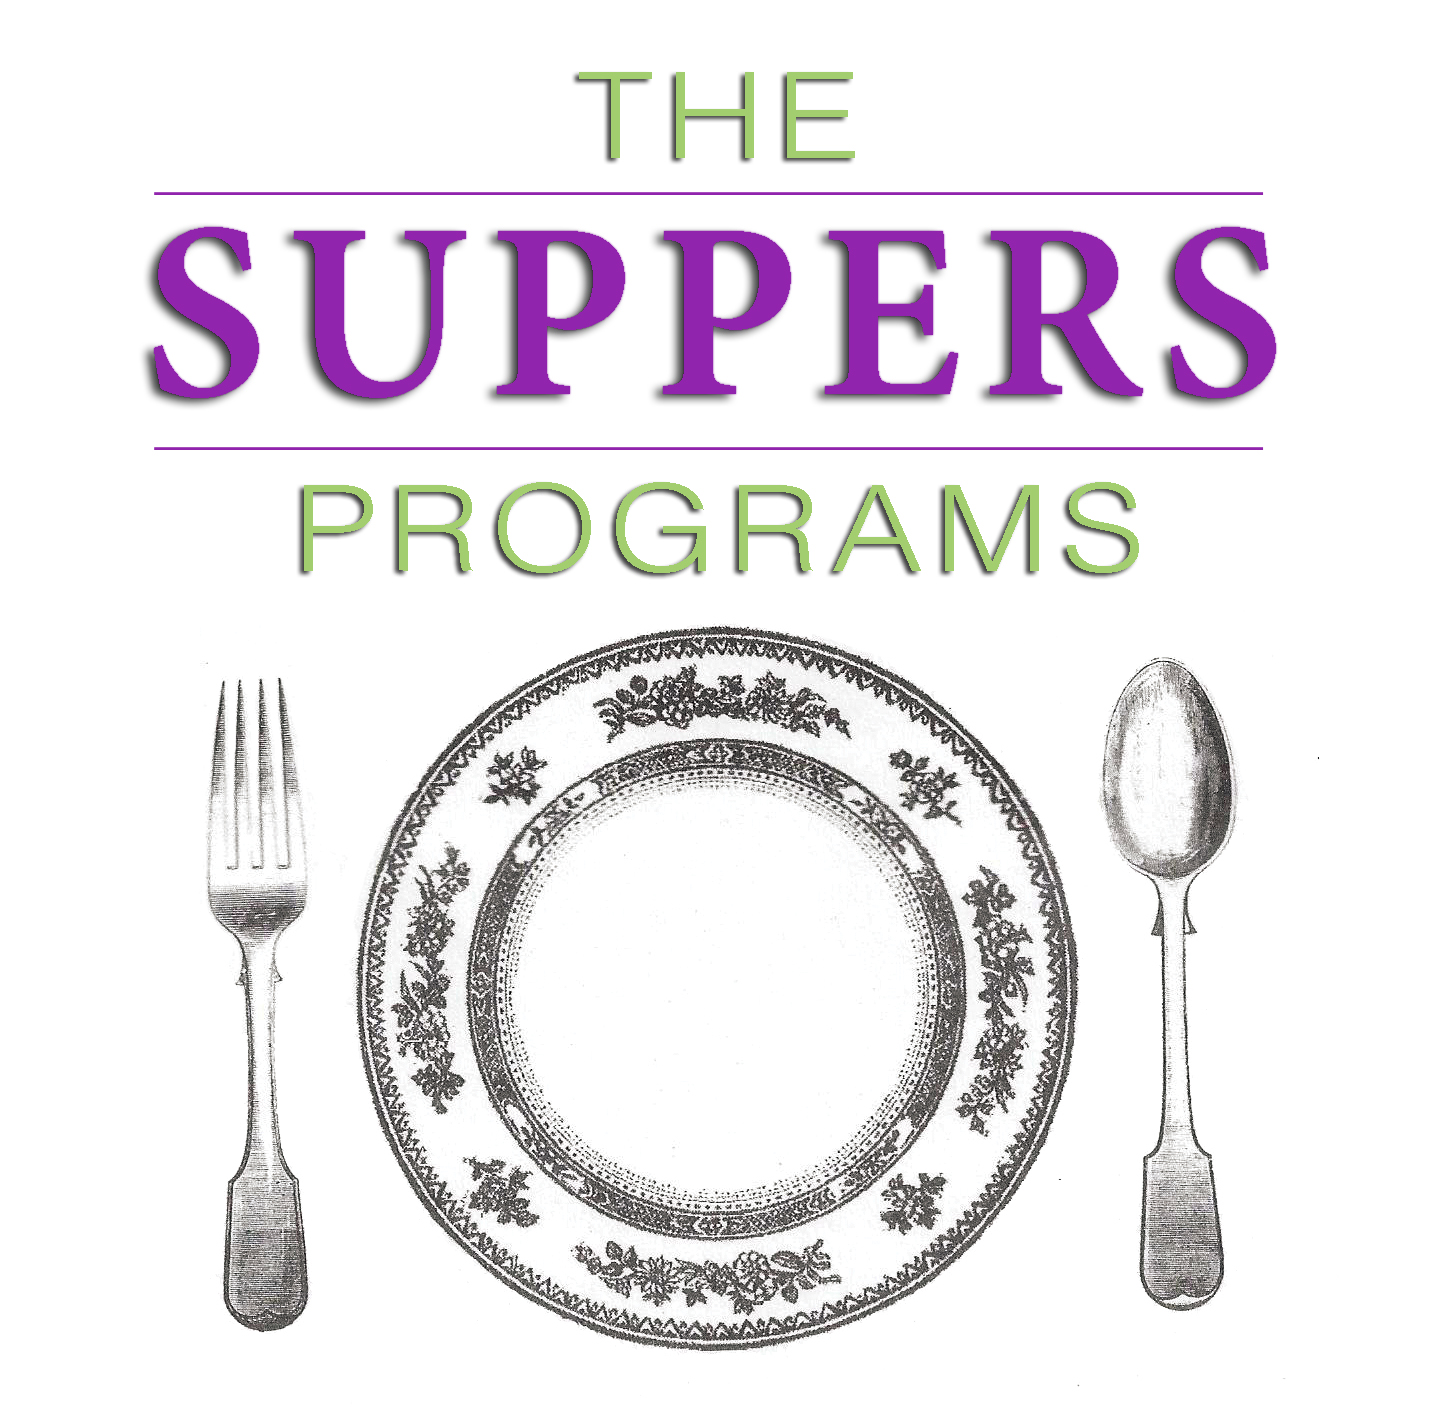 The Suppers Program